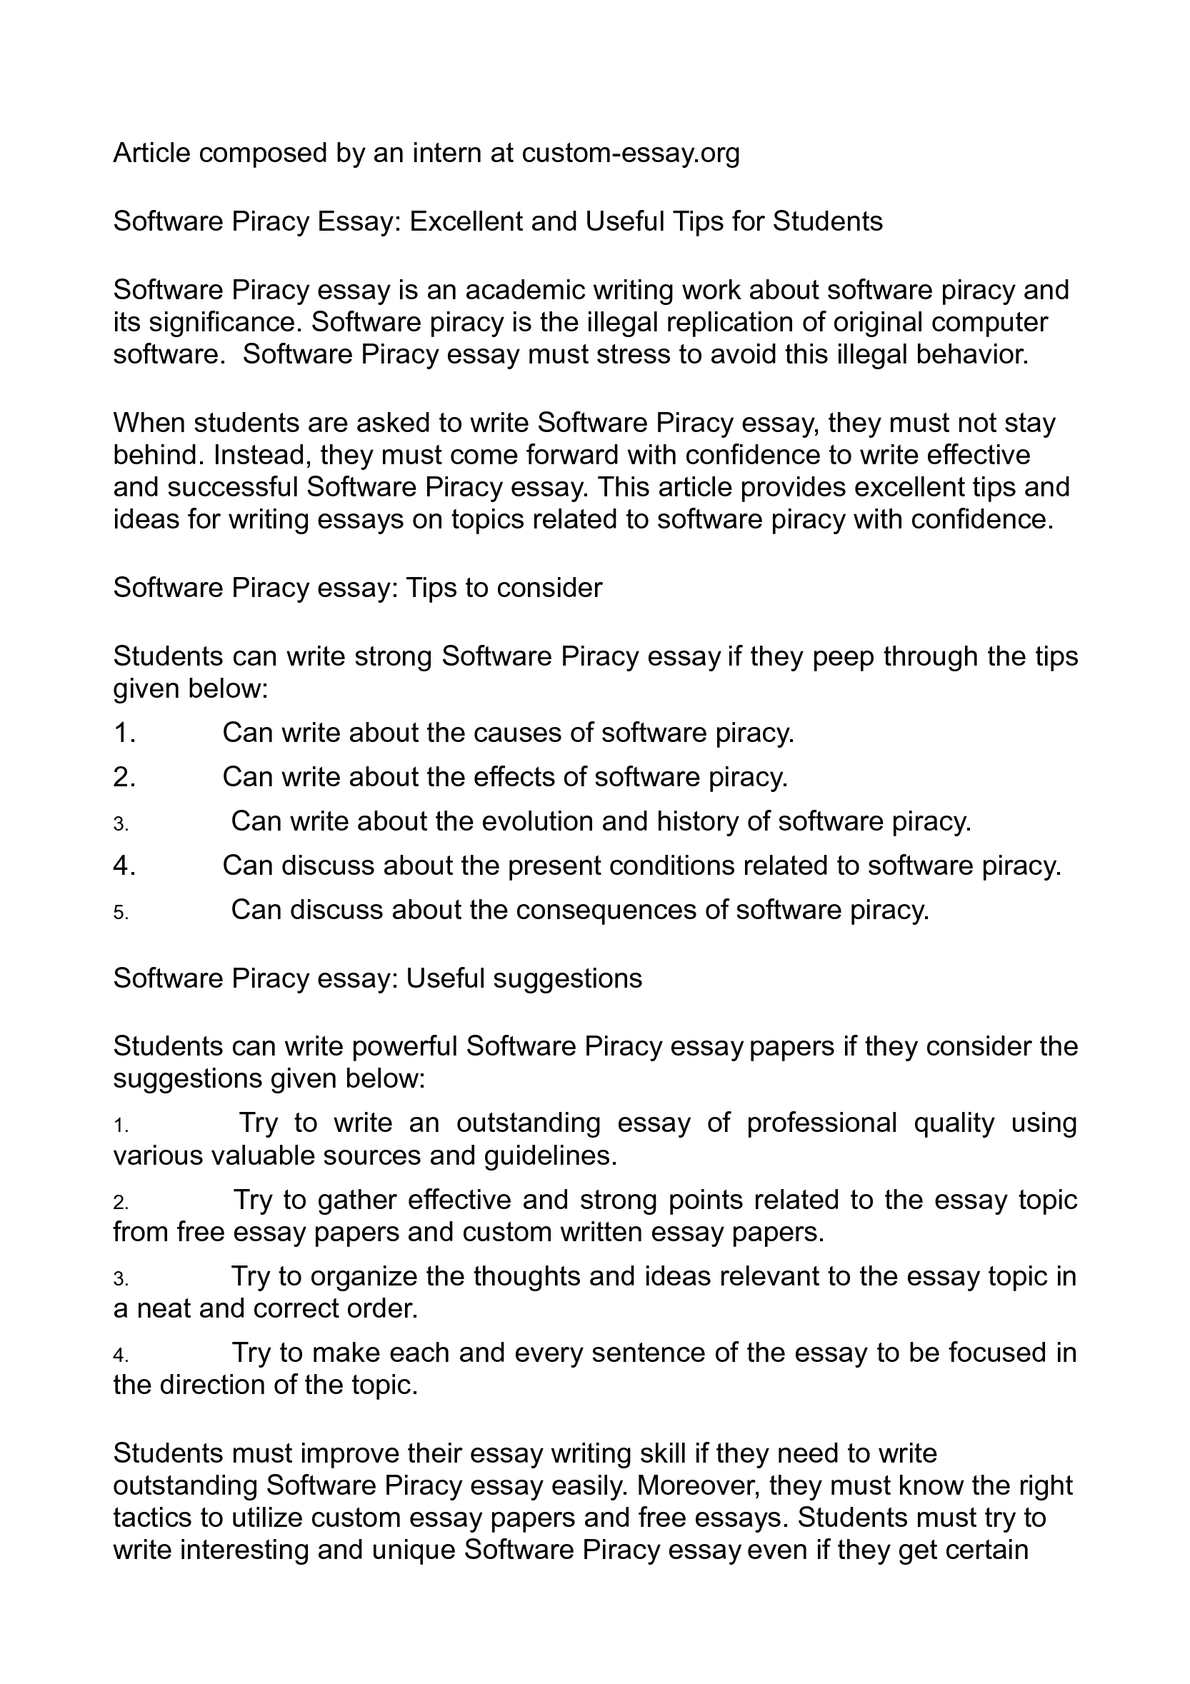 Espository Essay  Conclusion For Persuasive Essay also French Essay Calamo  Software Piracy Essay Excellent And Useful Tips For Students Persuasive Analysis Essay Example